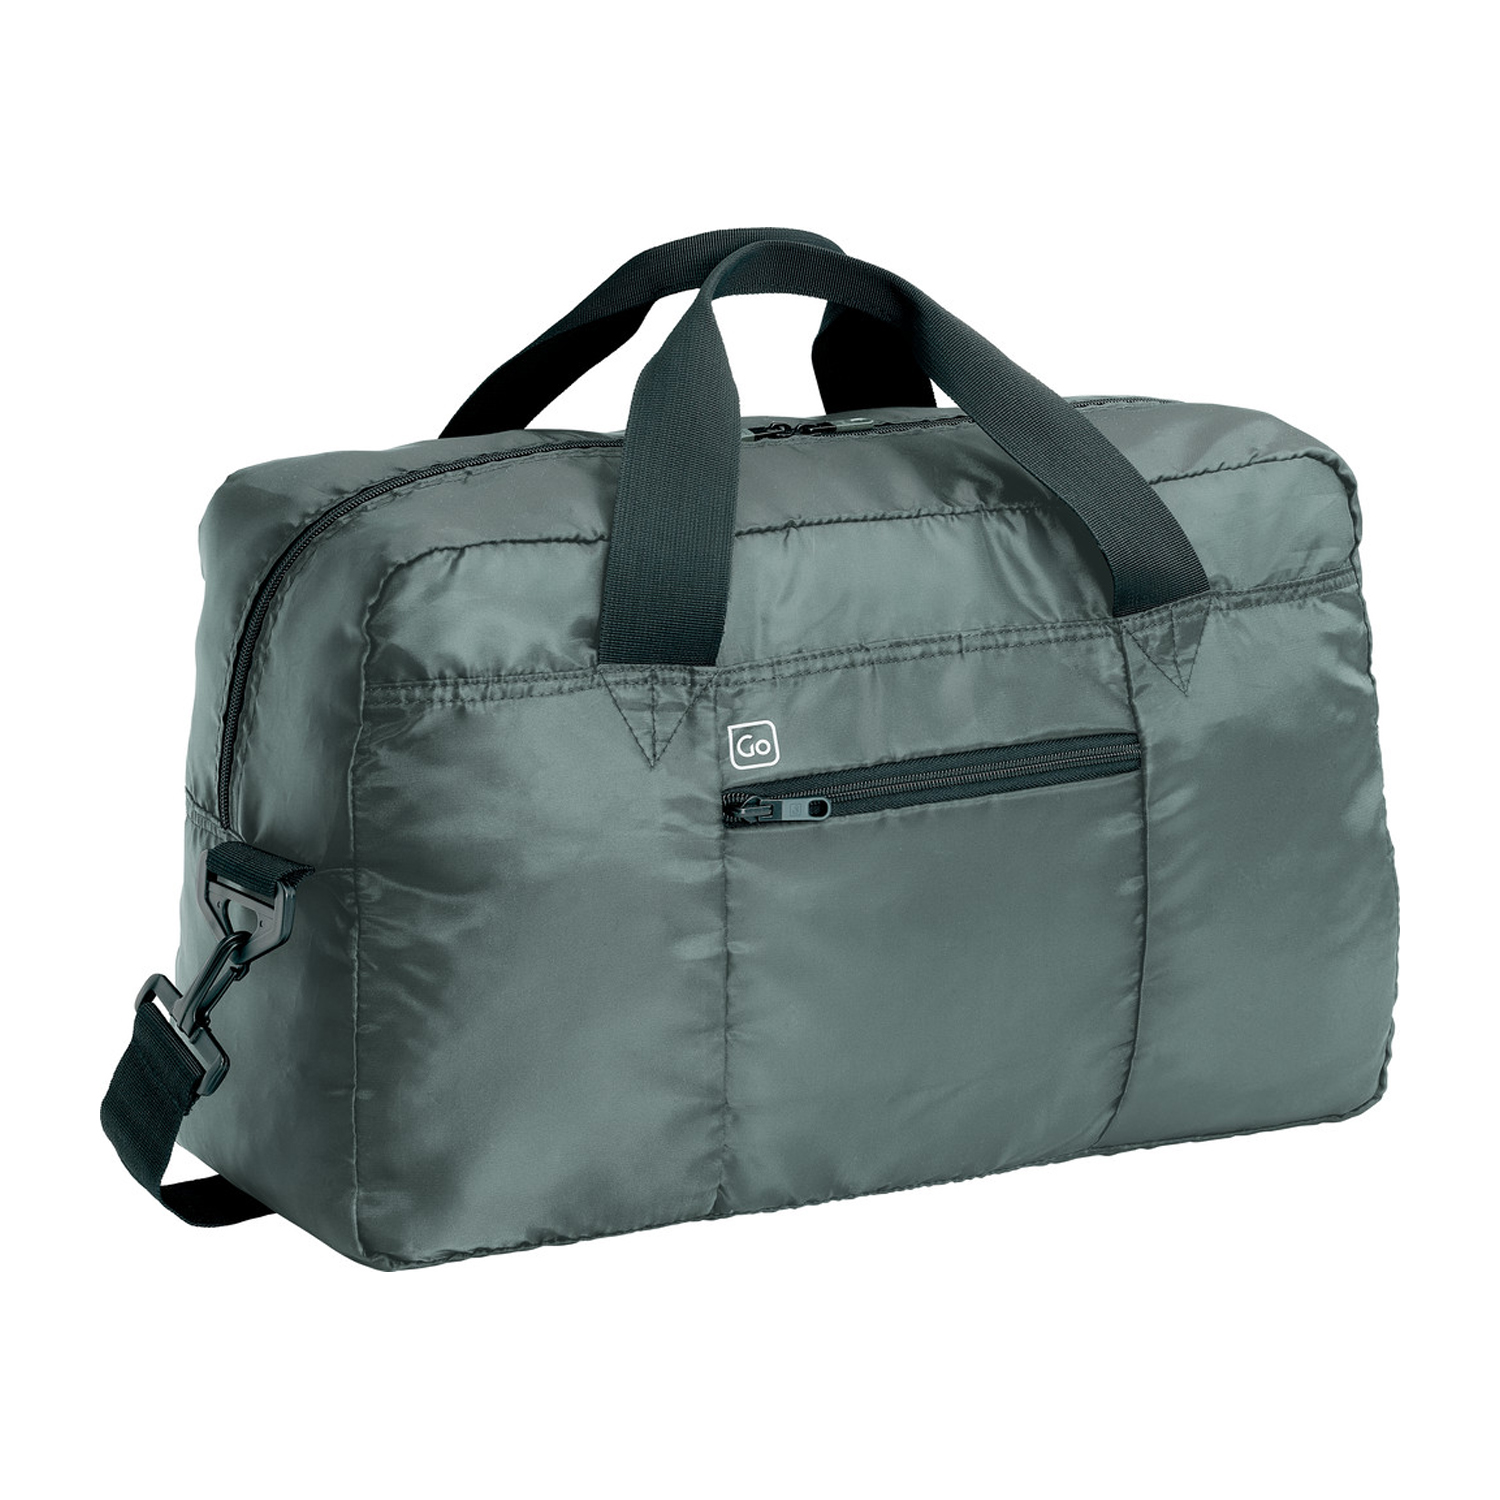 a06de41014d3 Buy Go Travel Travel Bag Xtra (Grey) in Singapore & Malaysia - The Planet  Traveller